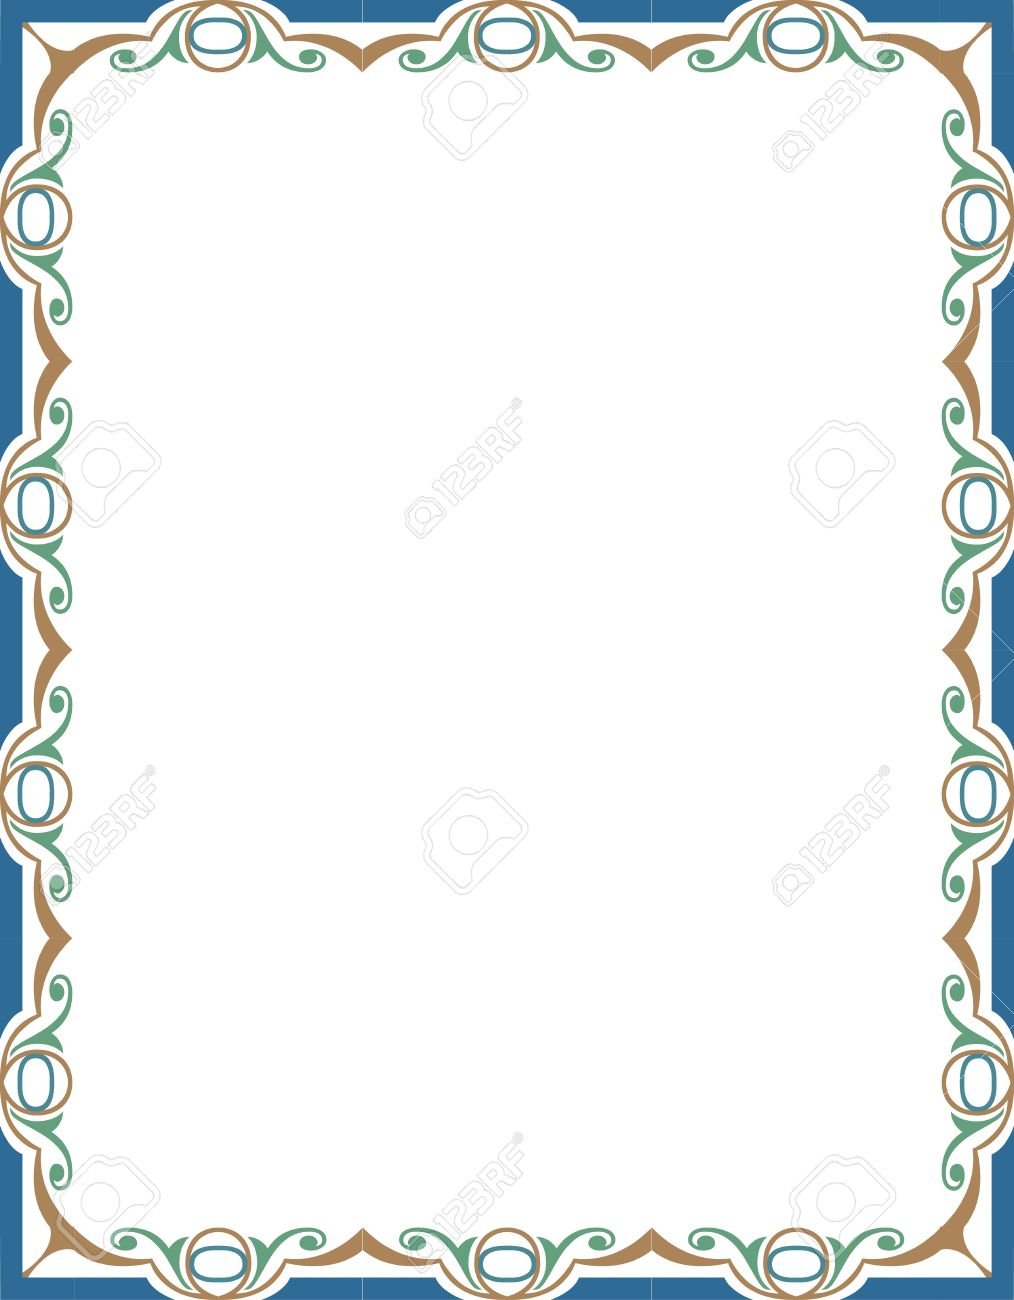 Moroccan Frame Clipart.